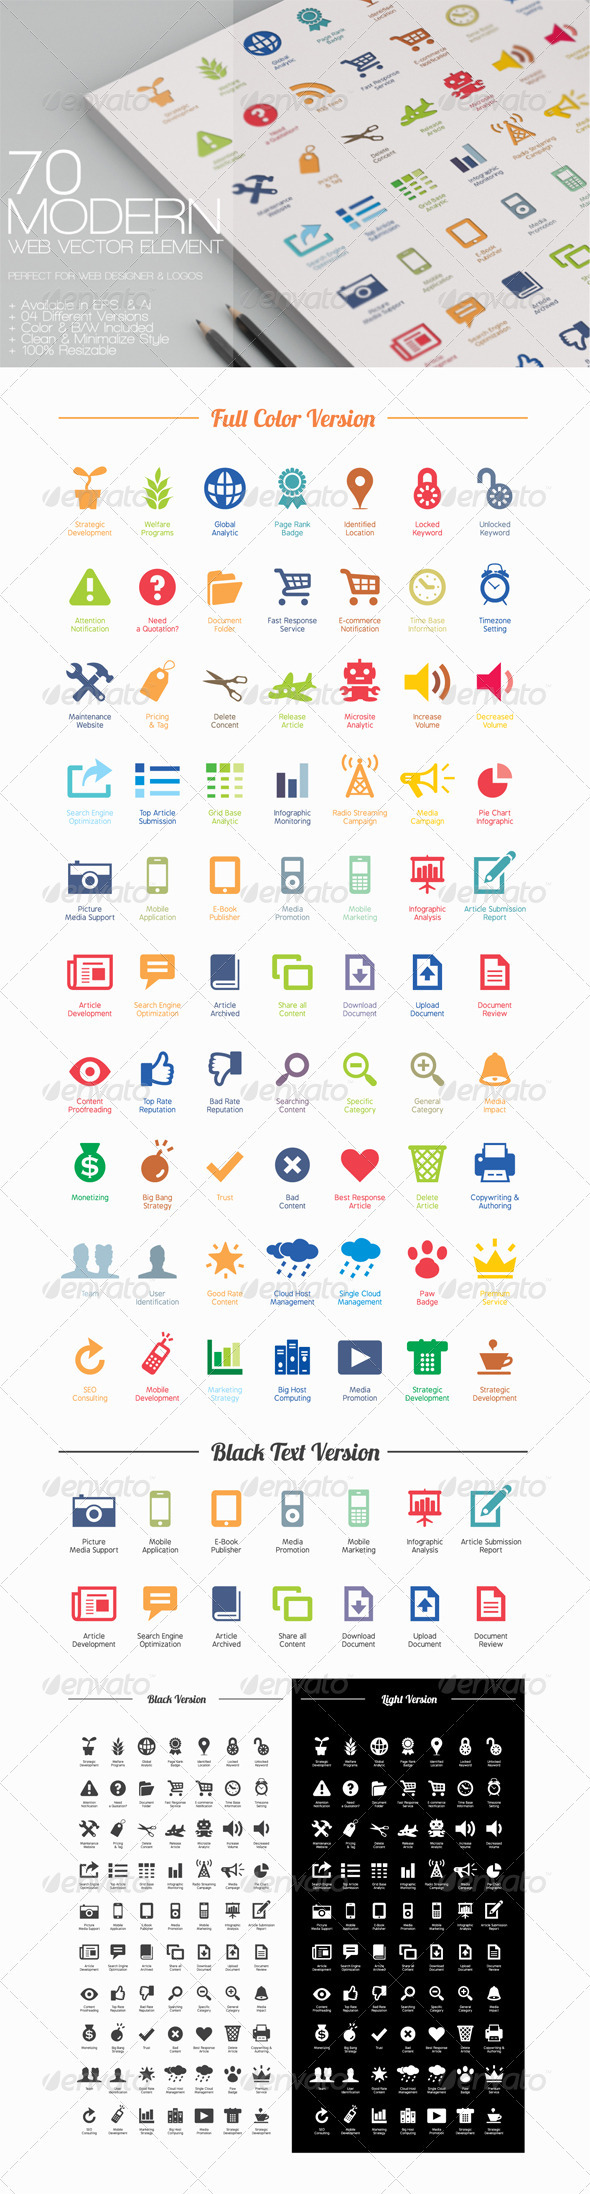 GraphicRiver 70 Modern Web Vector Elements 3538457